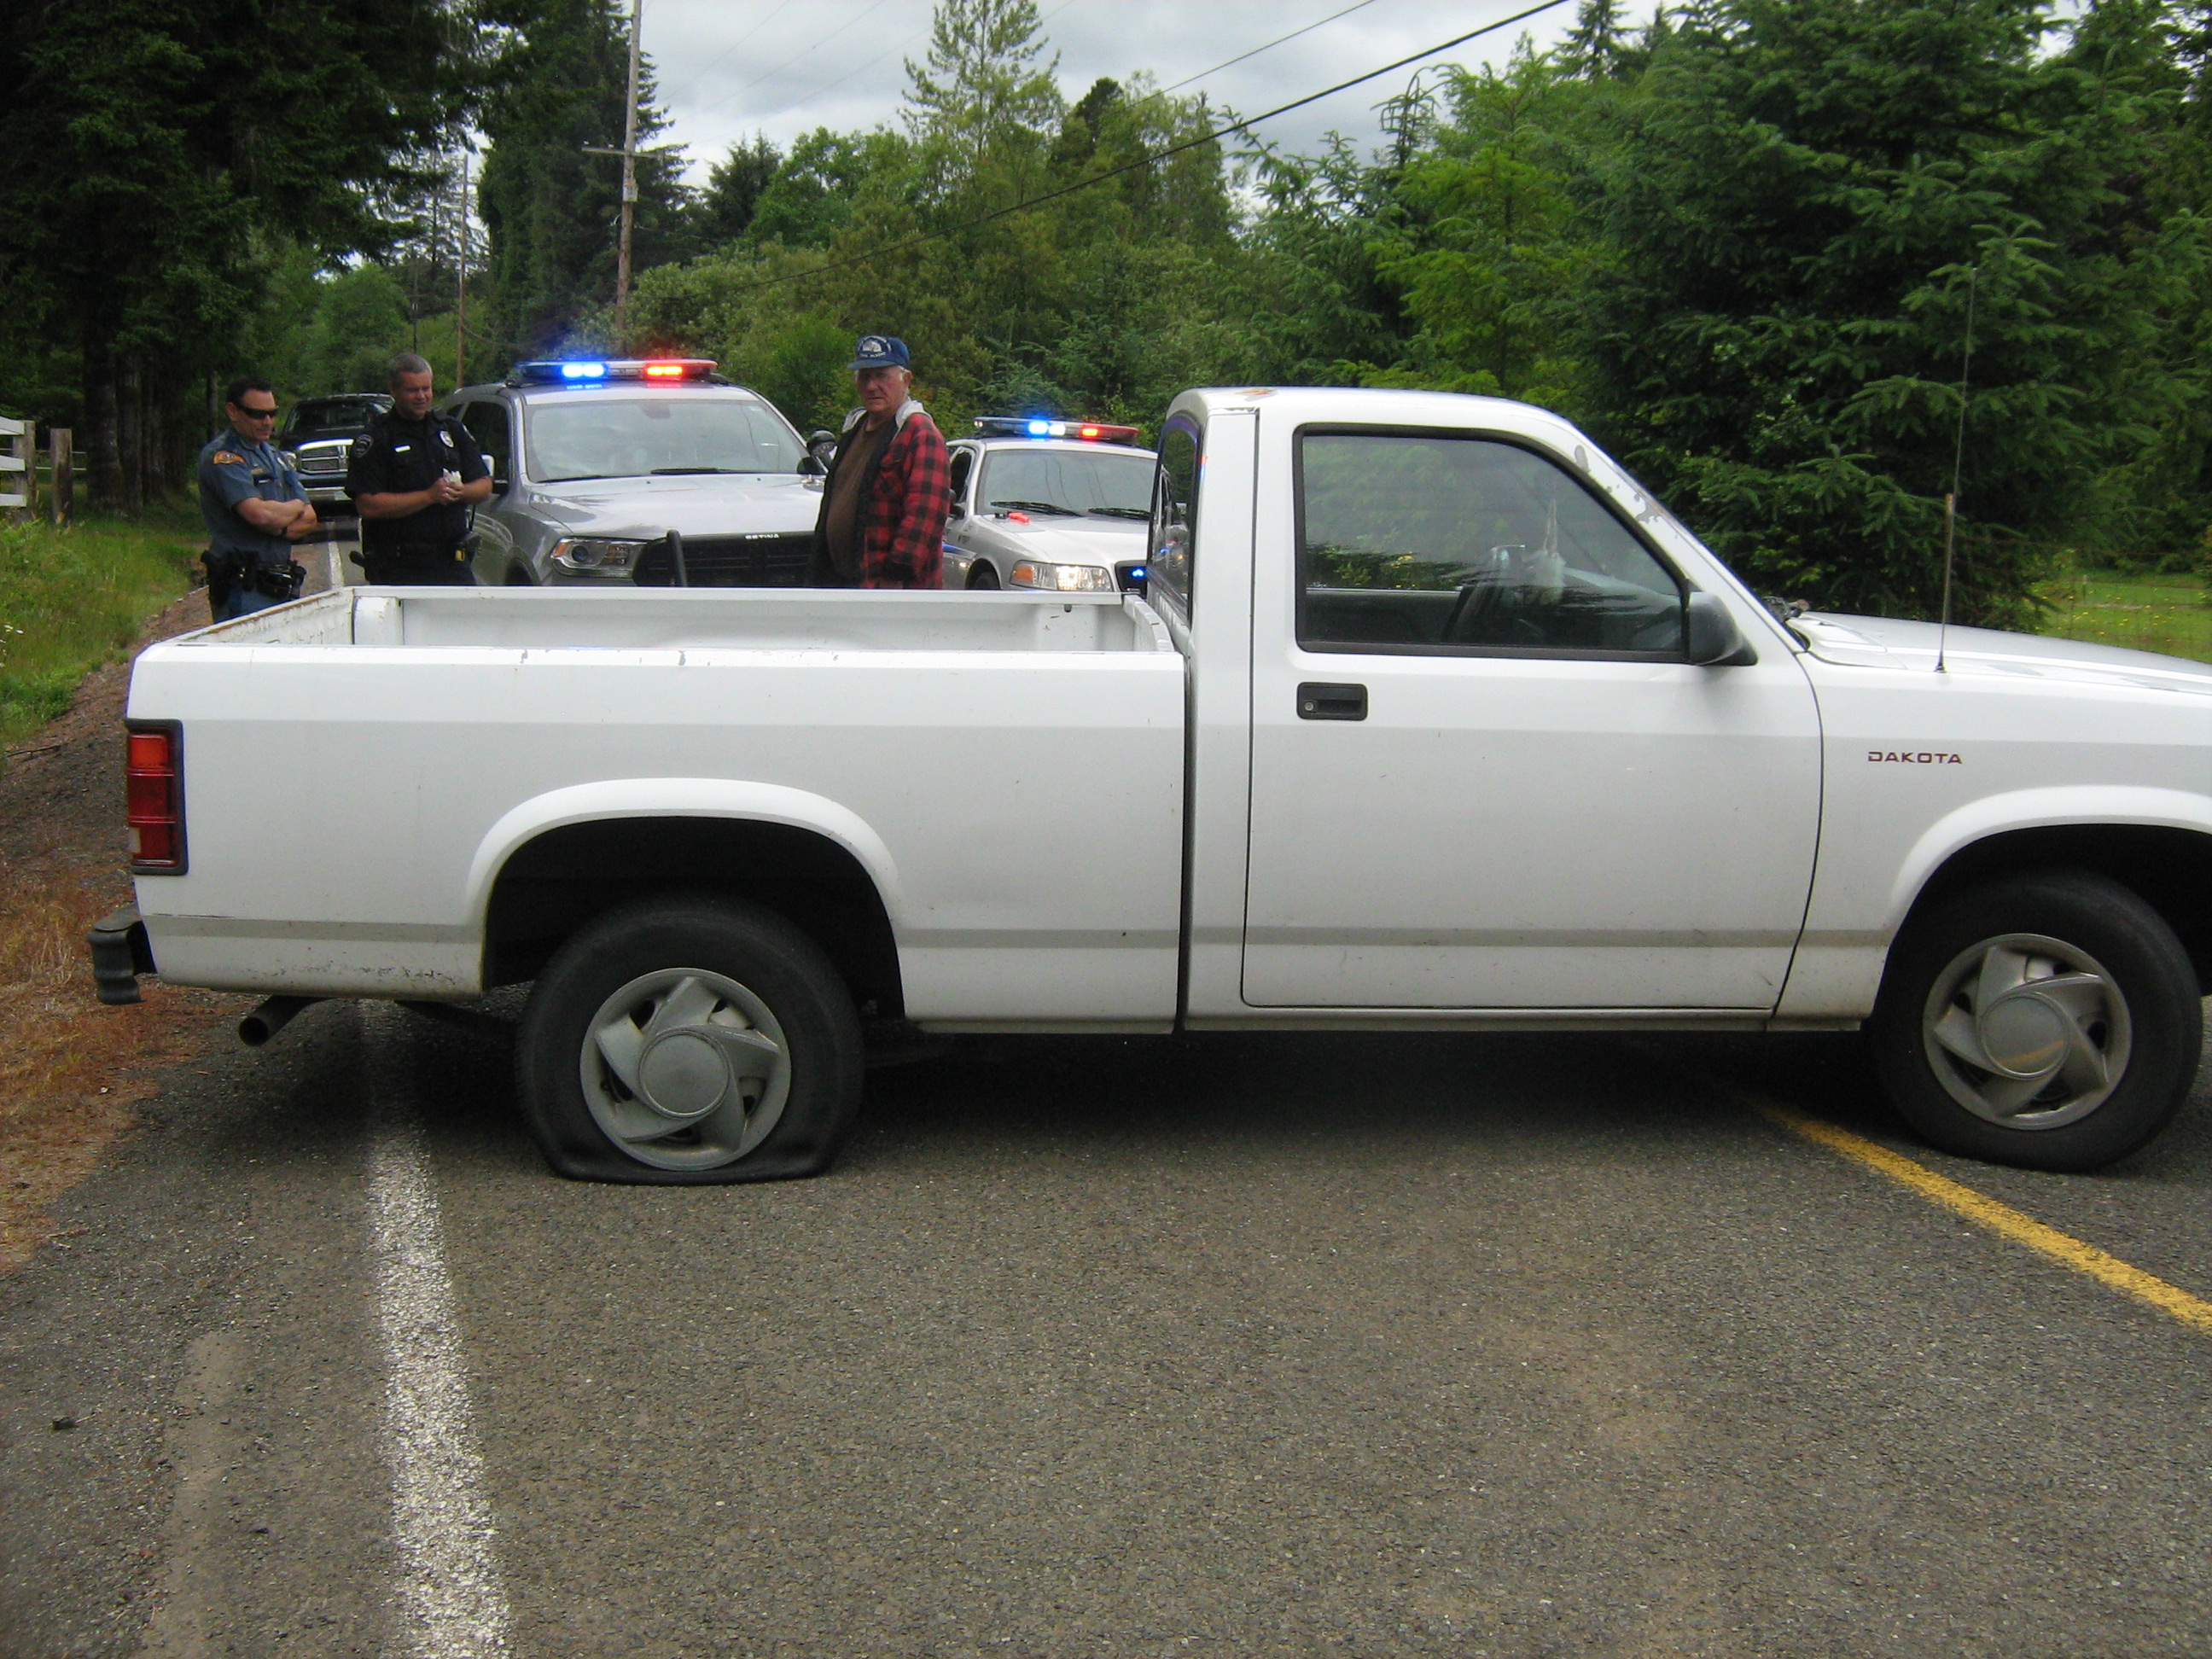 Hoquiam pursuit ends with good samaritan's intervention